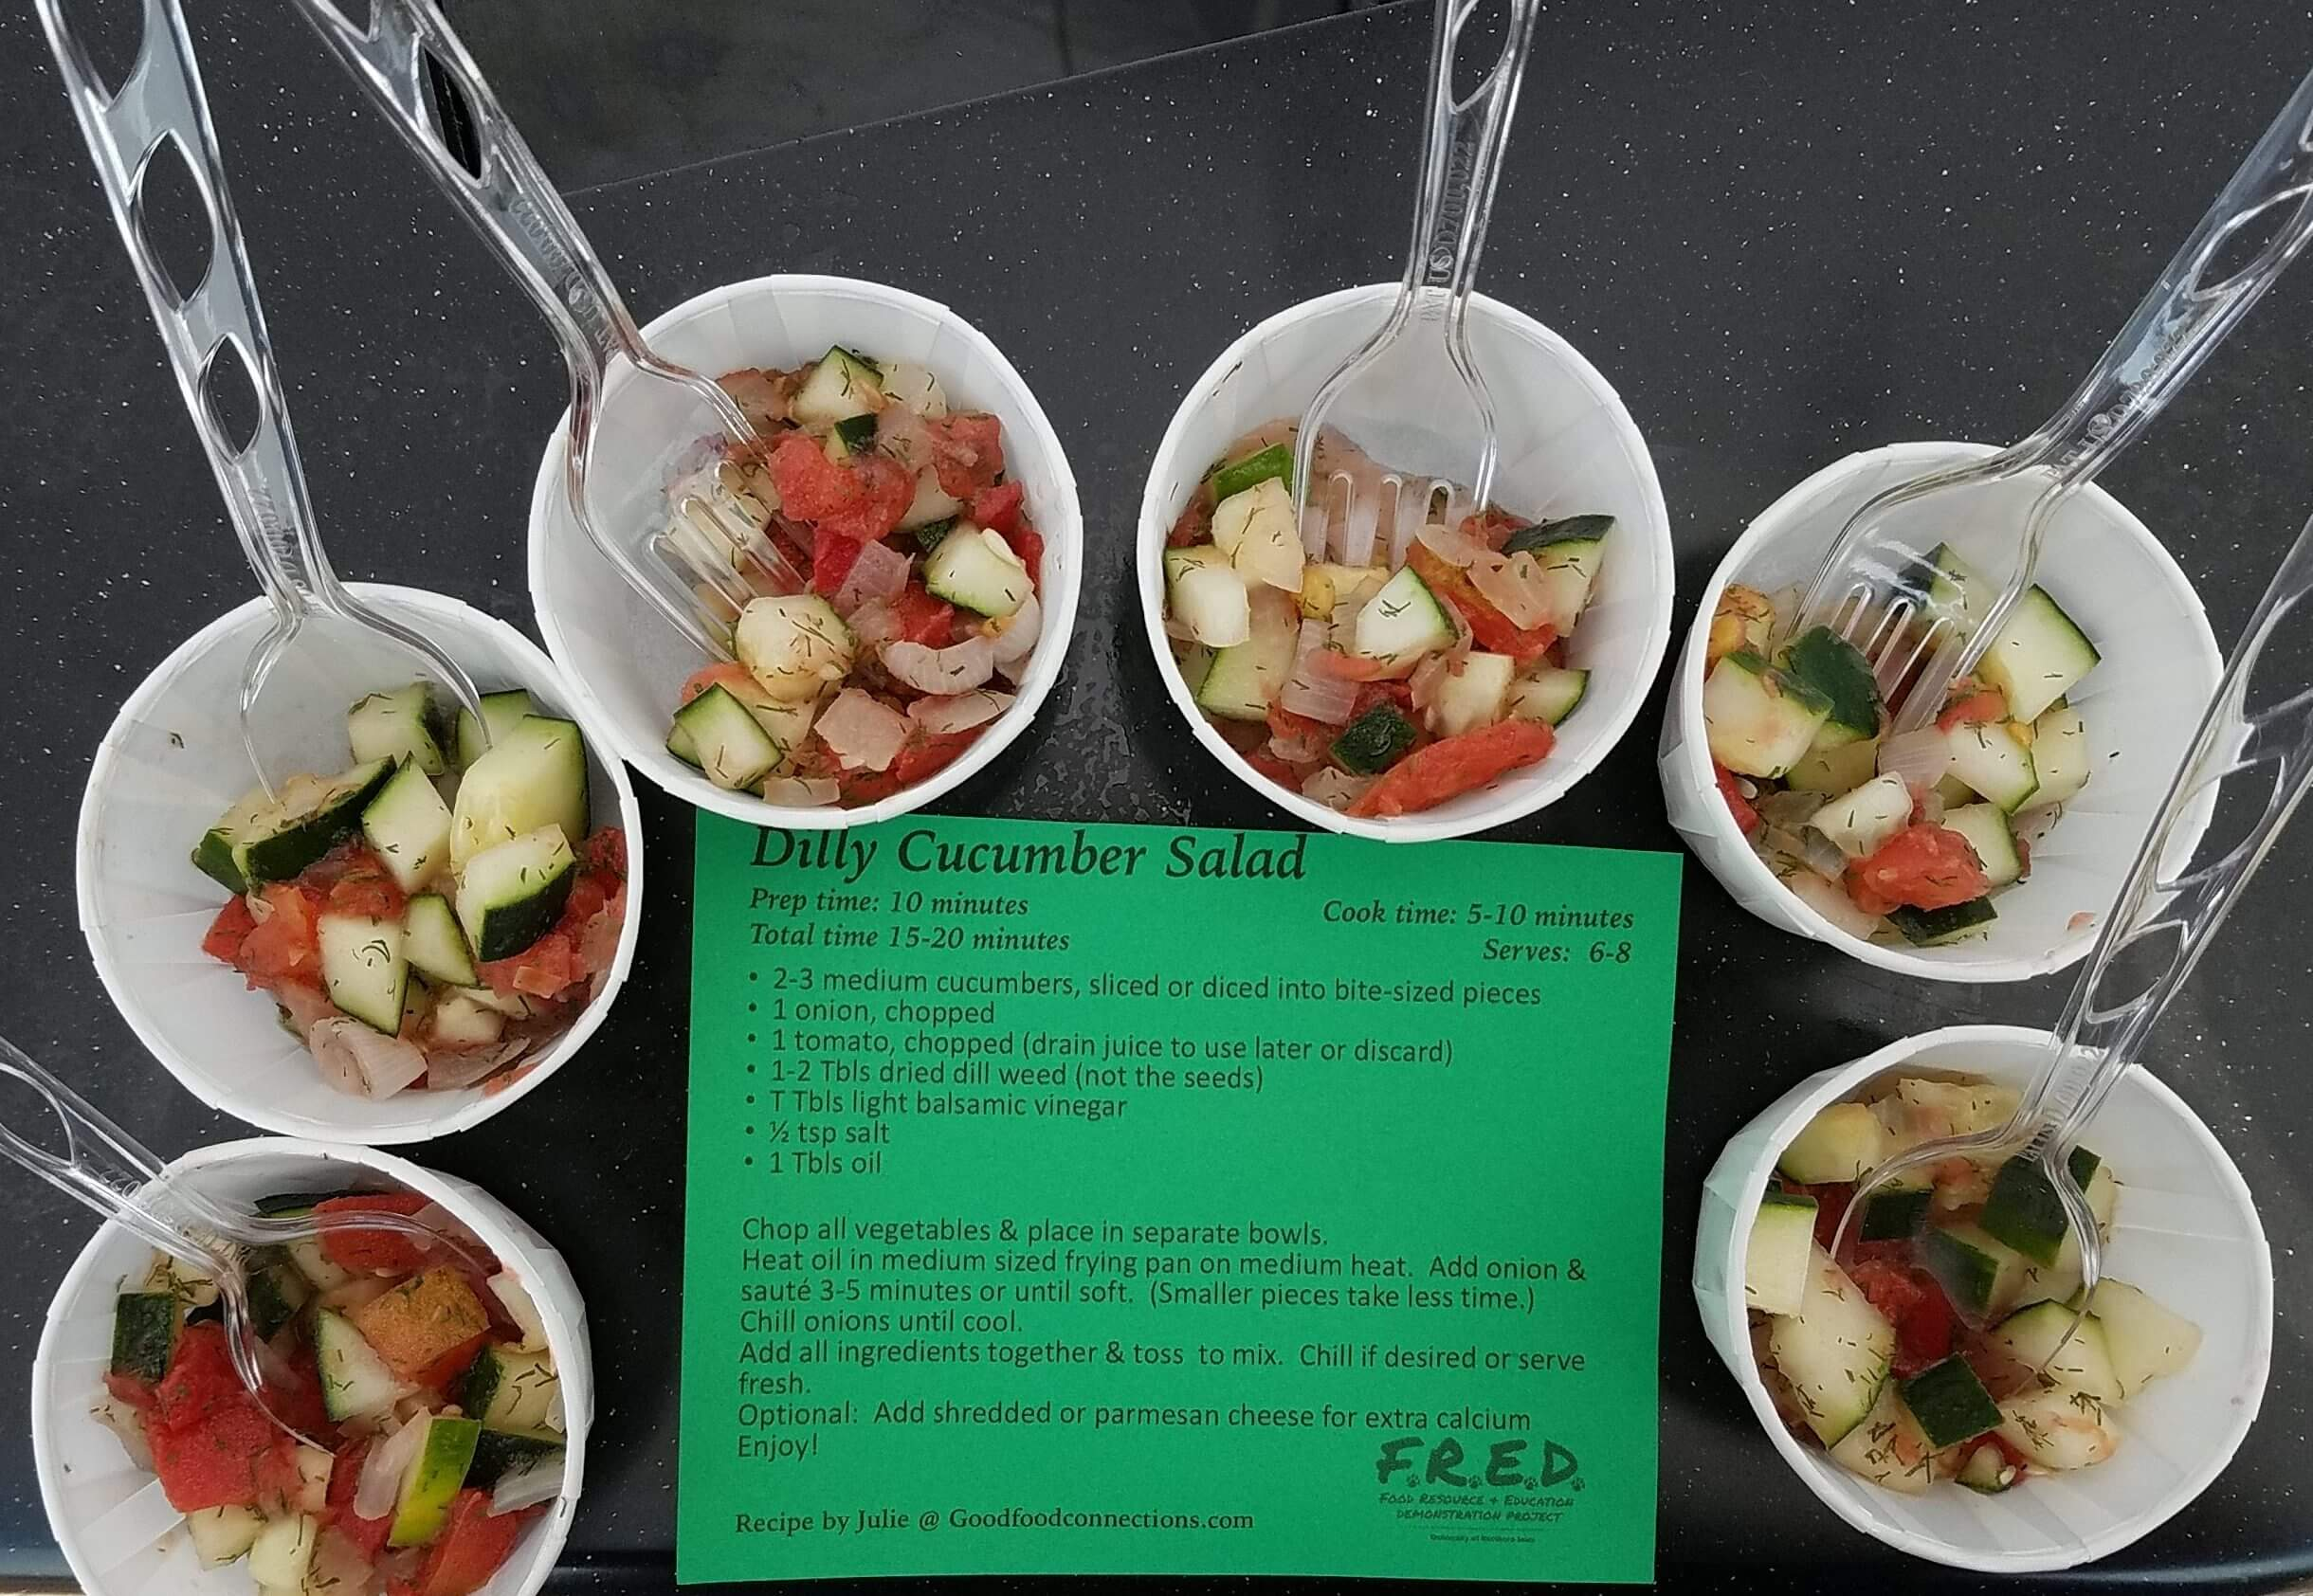 samples of Dilly Cucumber Salad